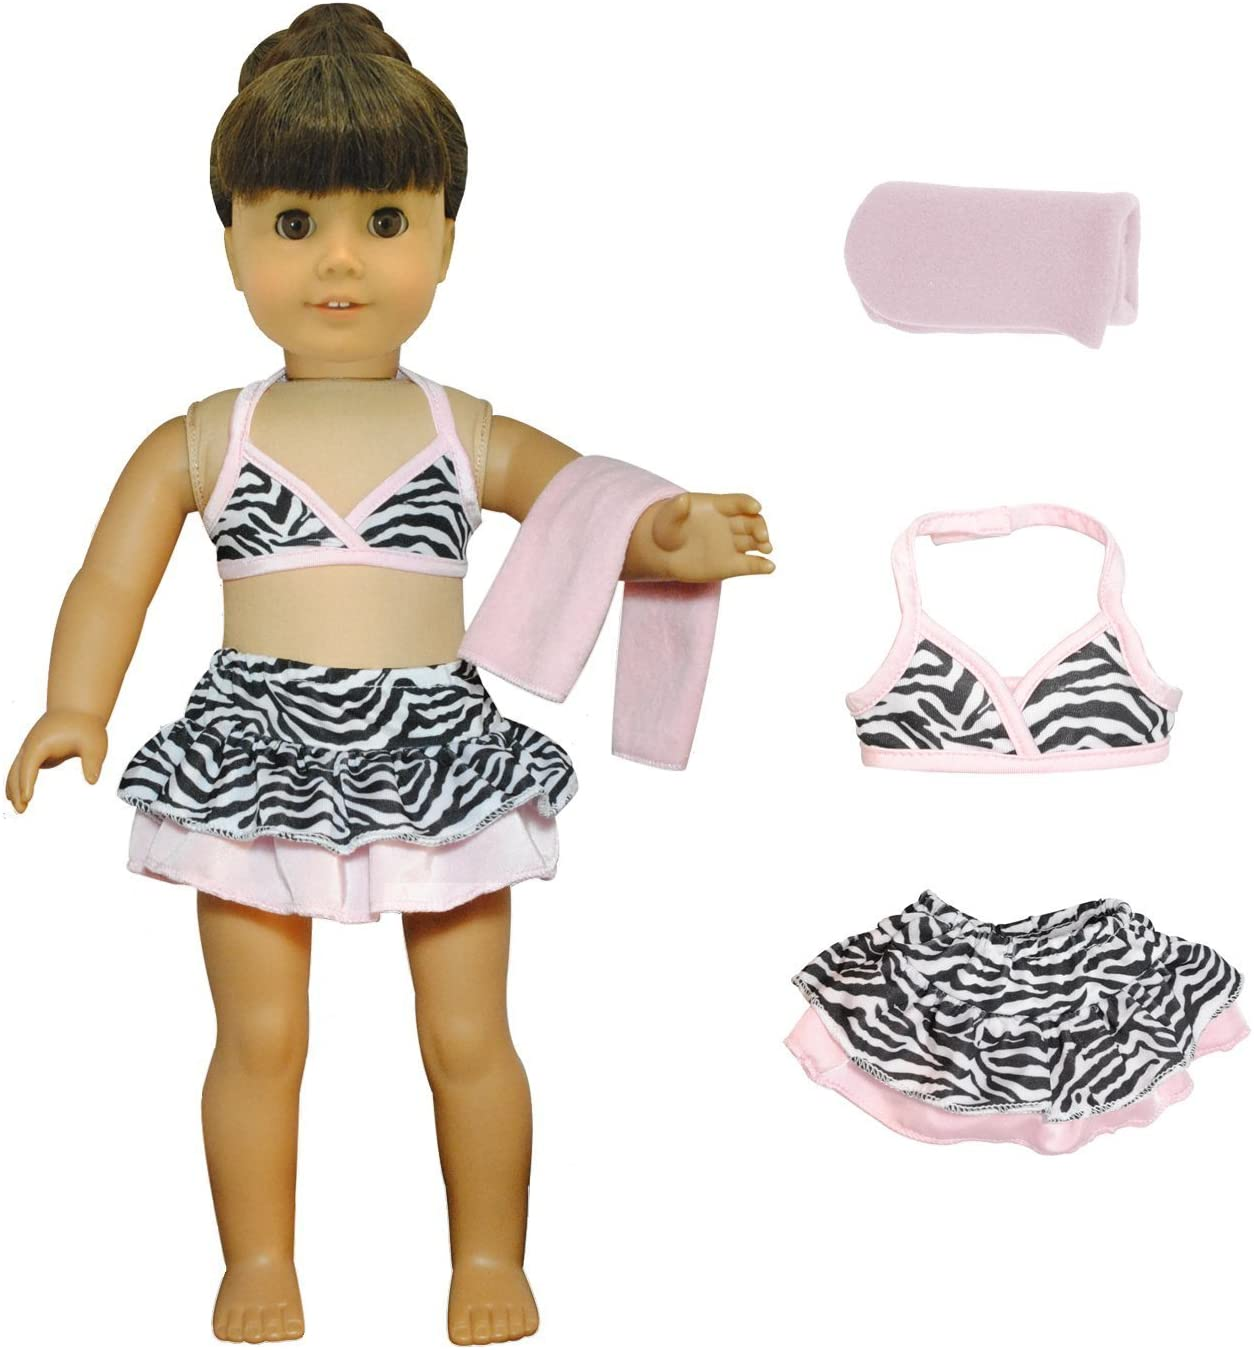 Pink Butterfly Closet Doll Clothes - 3 Pieces Bikini Swimsuit (Skit, Top and Beach Blanket) Set Fits American Girl Doll and 18 inch Dolls -